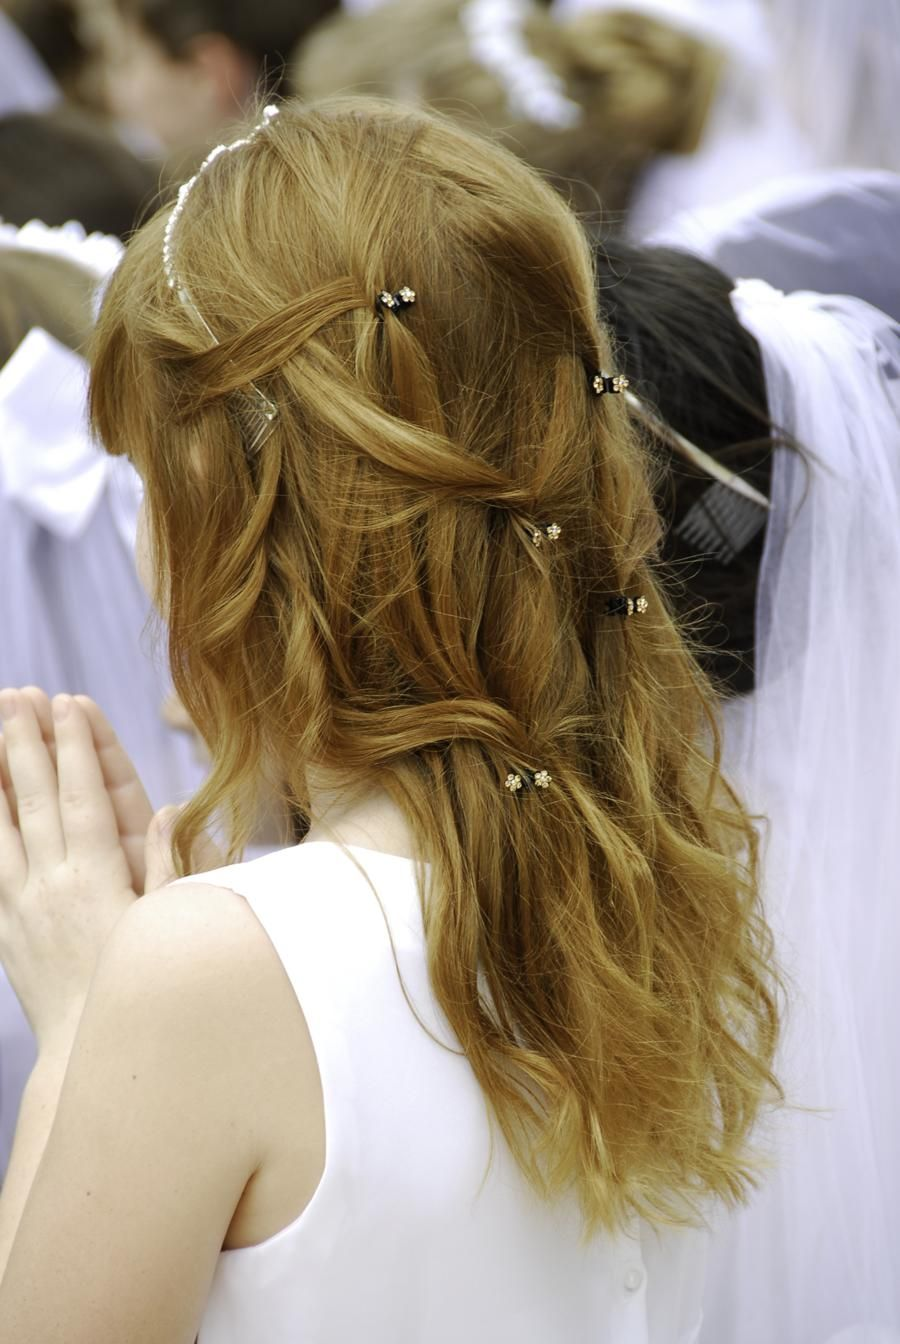 28 easy first communion hairstyles for girls that stole our